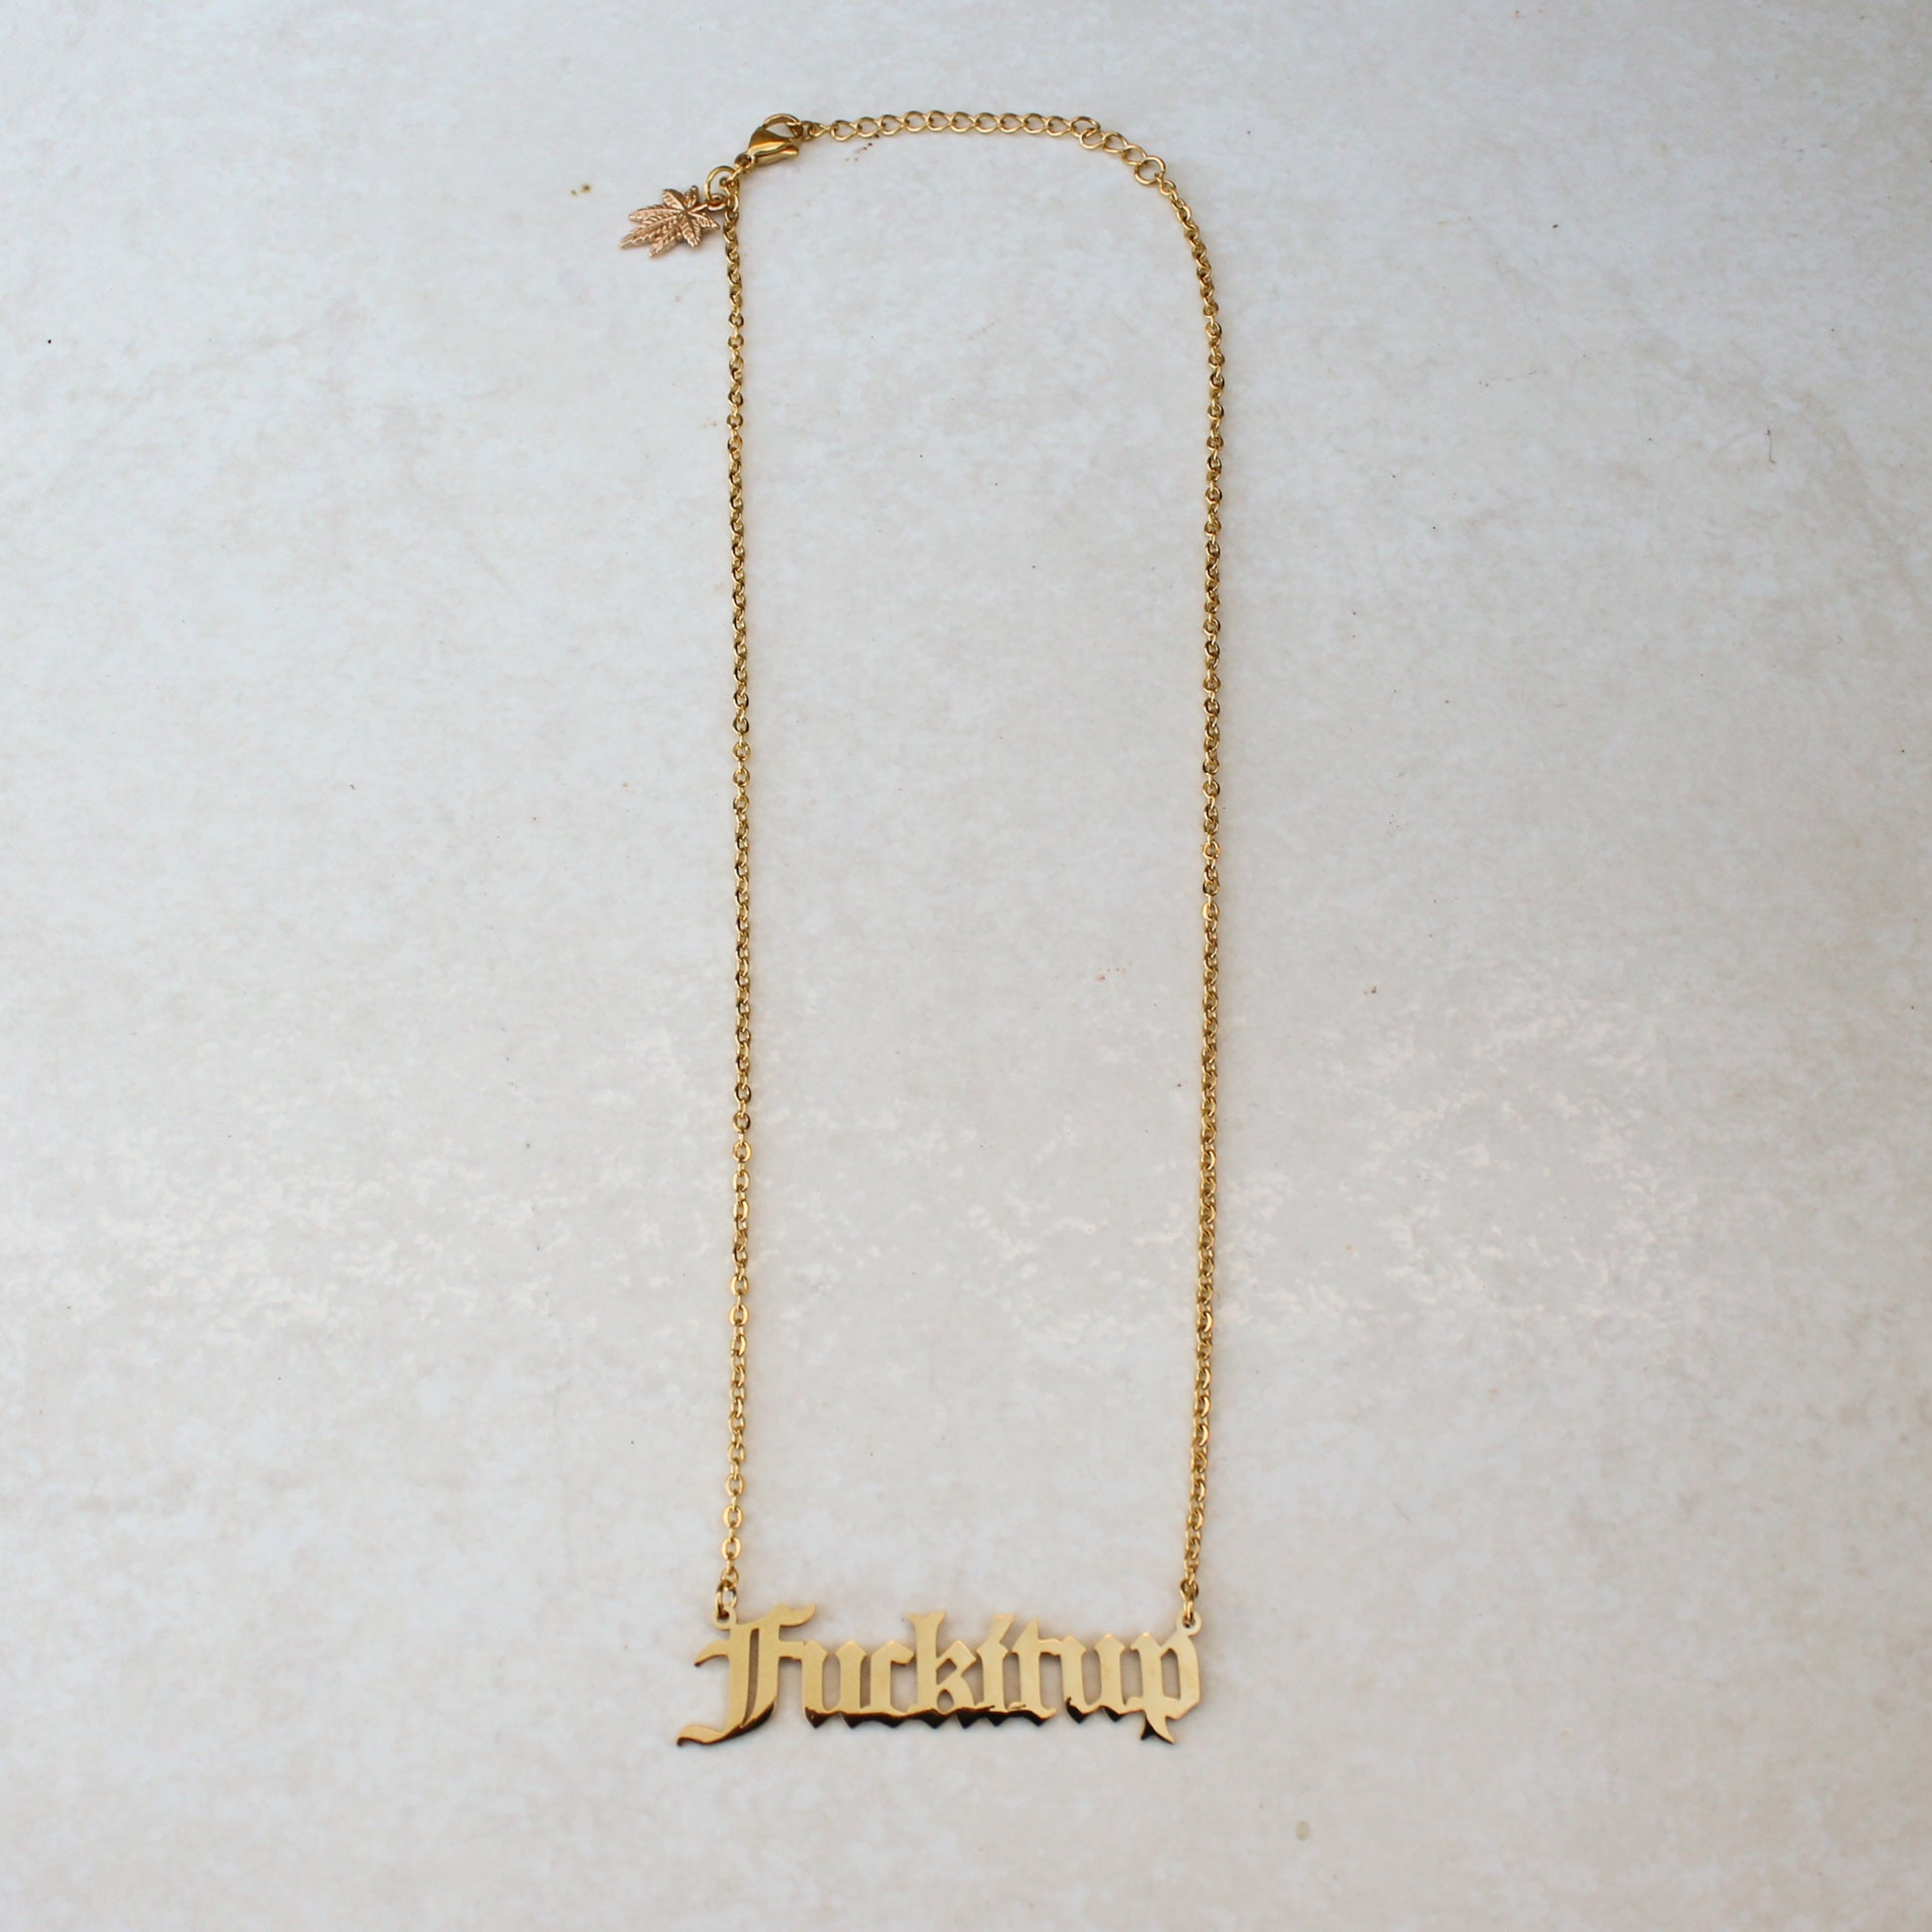 Fuck It Up Statement Necklace - Blunted Objects